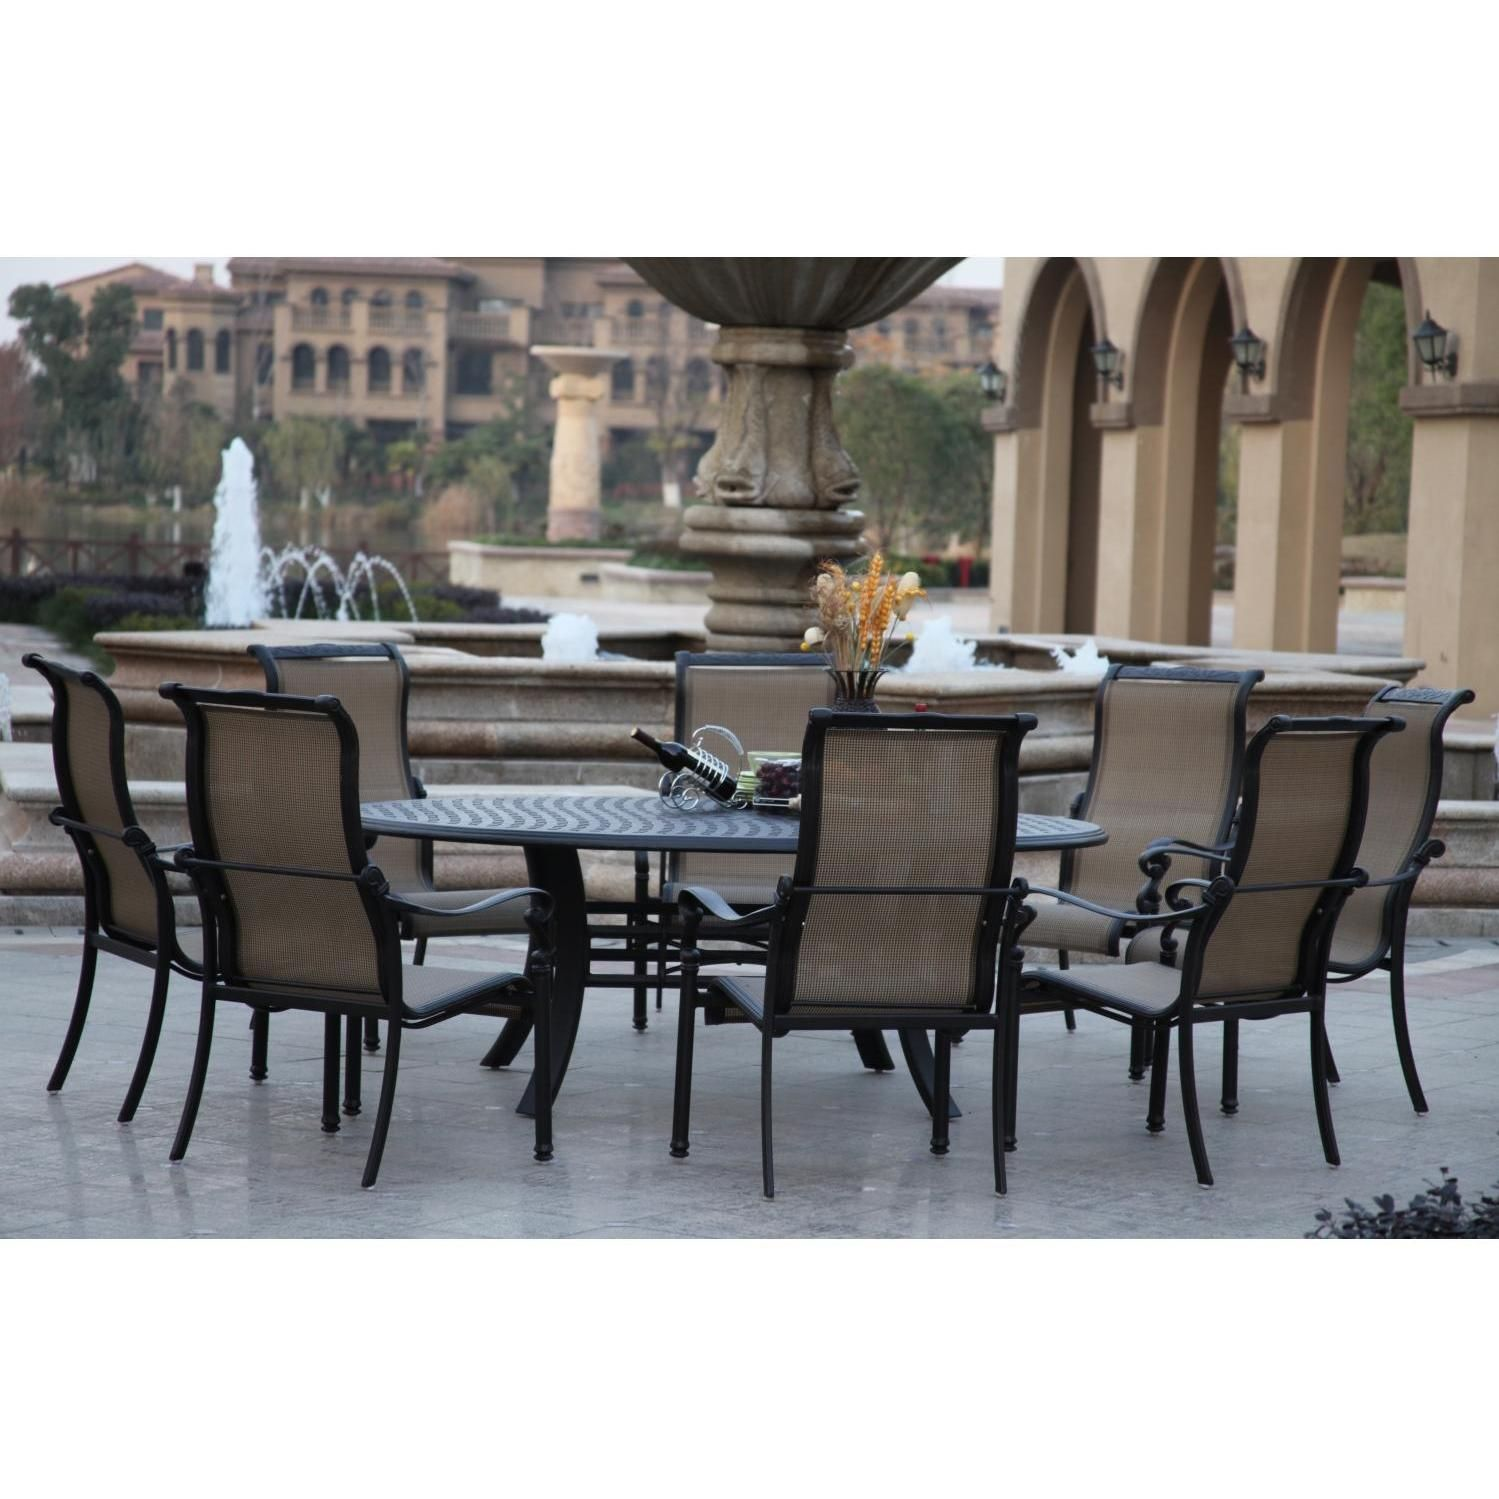 Perfect Darlee Monterey 8 Person Patio Dining Set   Antique Bronze